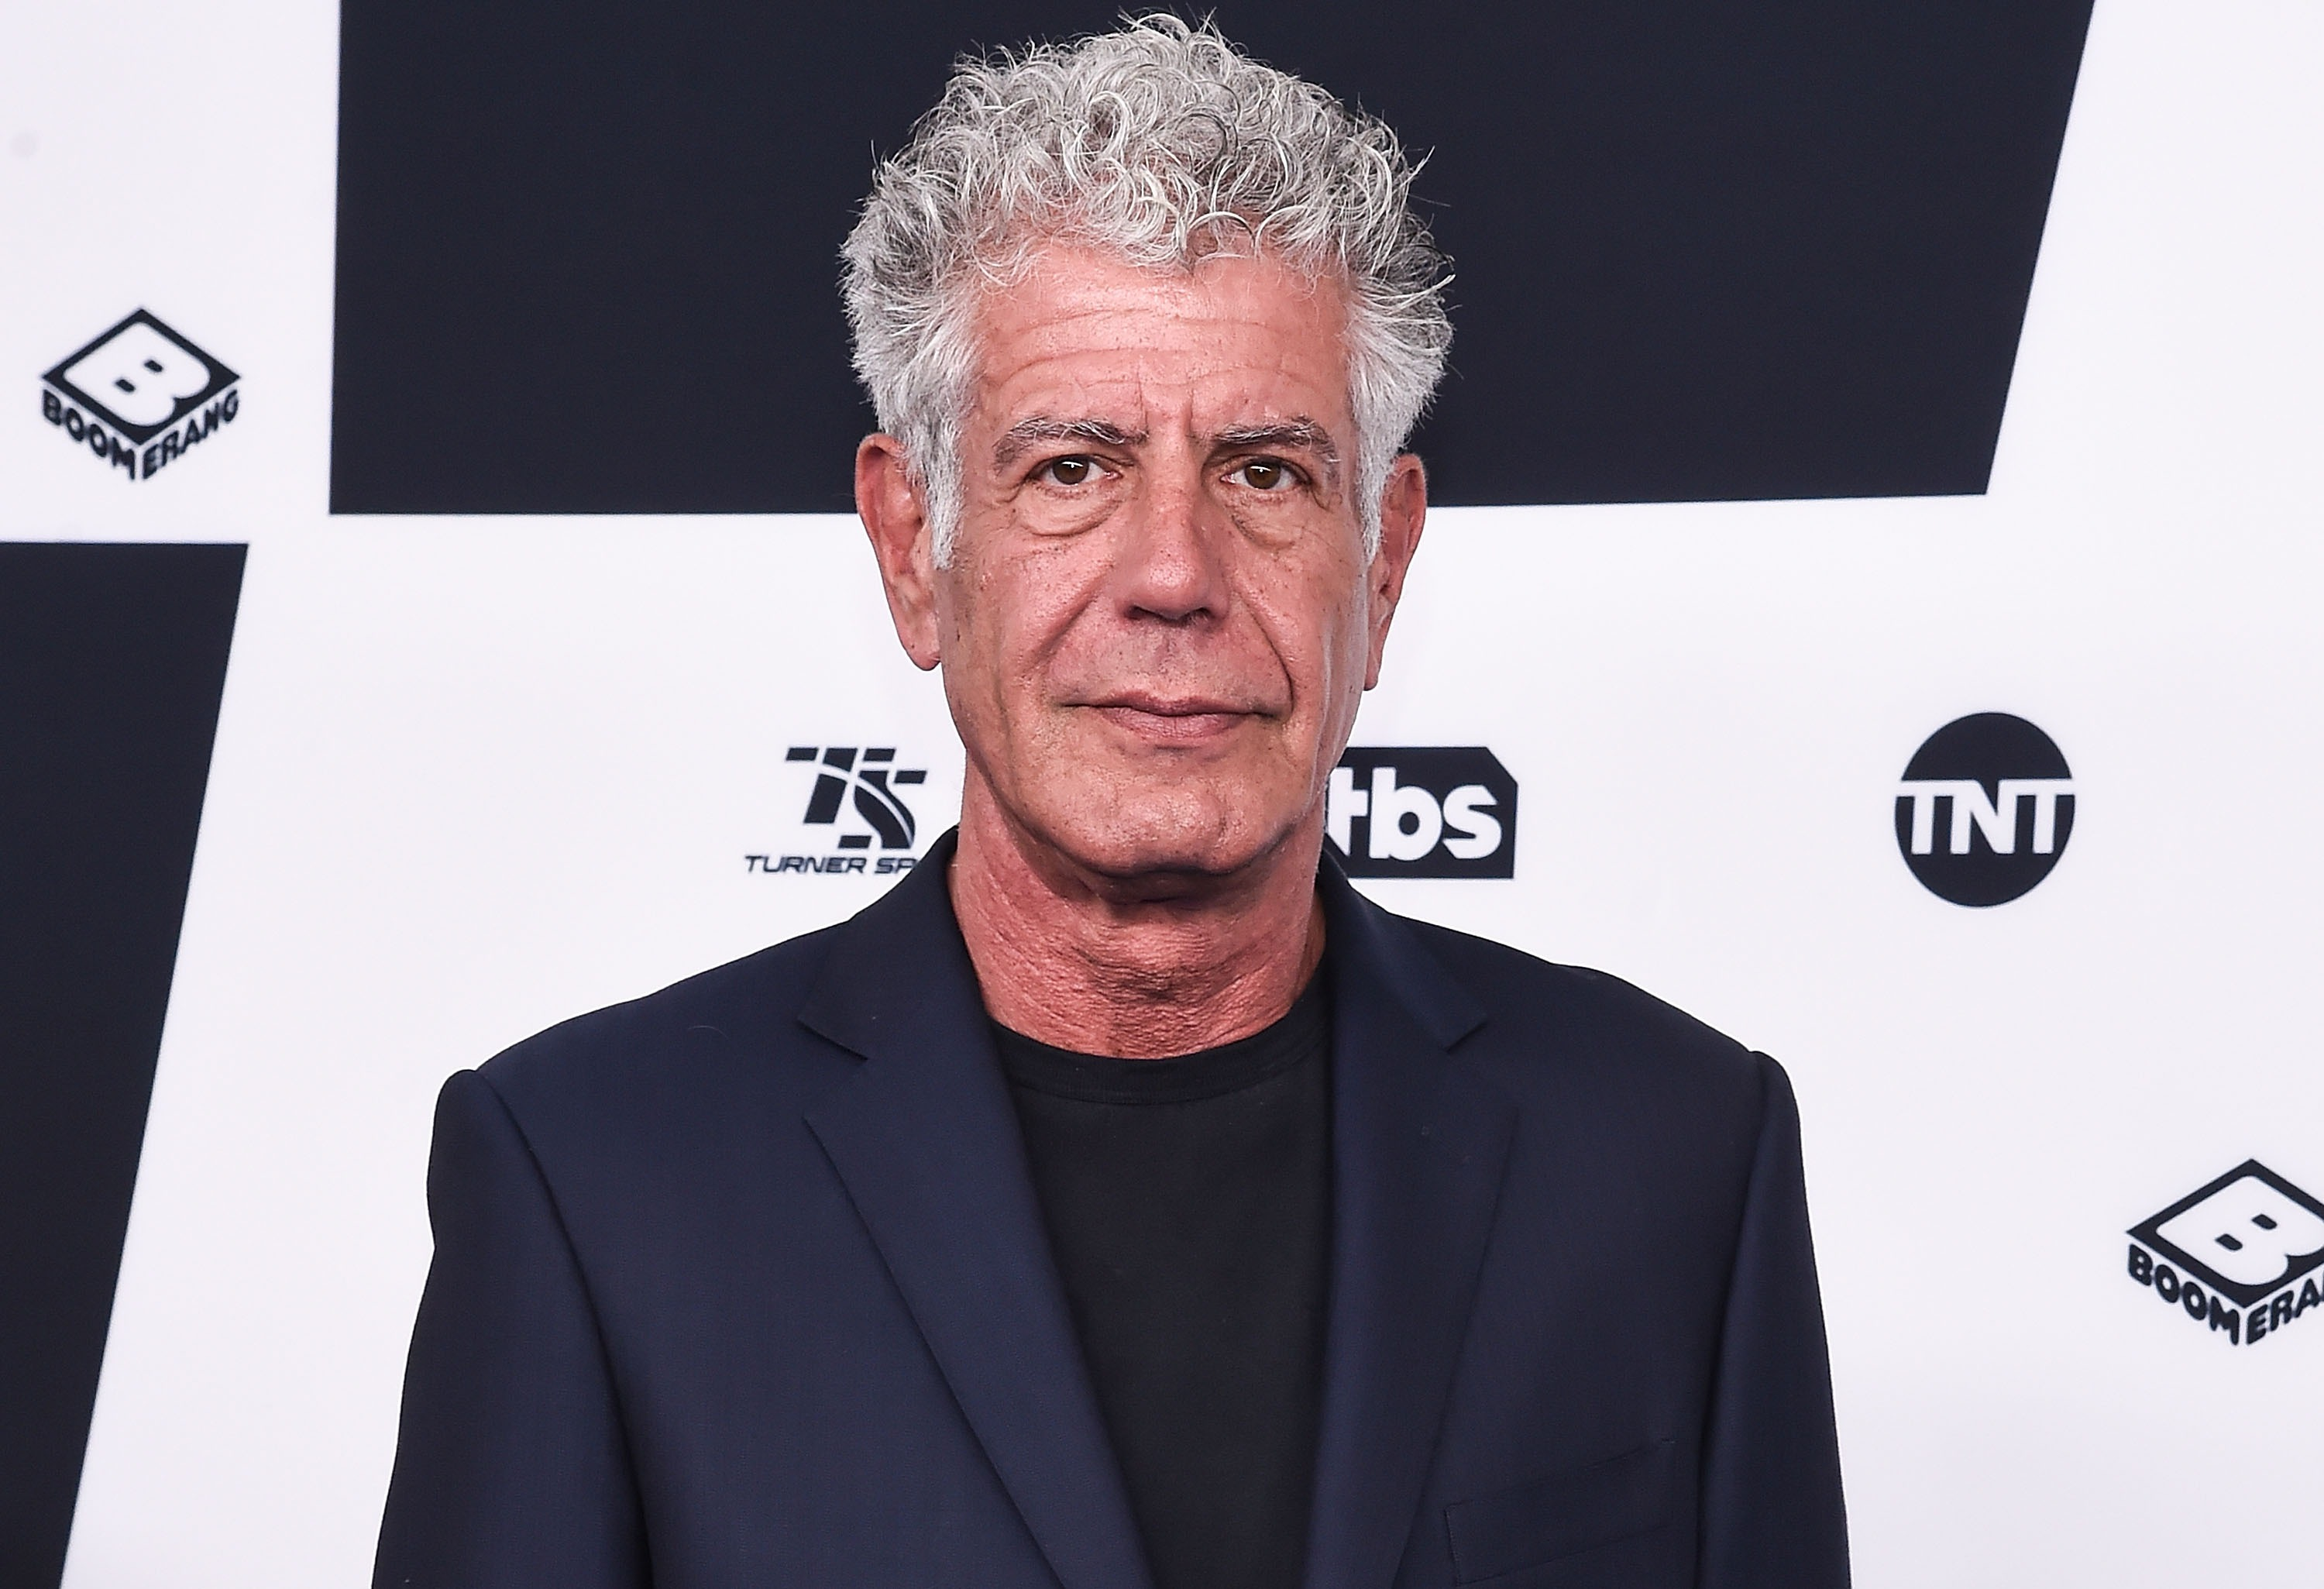 Anthony Bourdain attends the 2017 Turner Upfront at Madison Square Garden on May 17, 2017 in New York City.